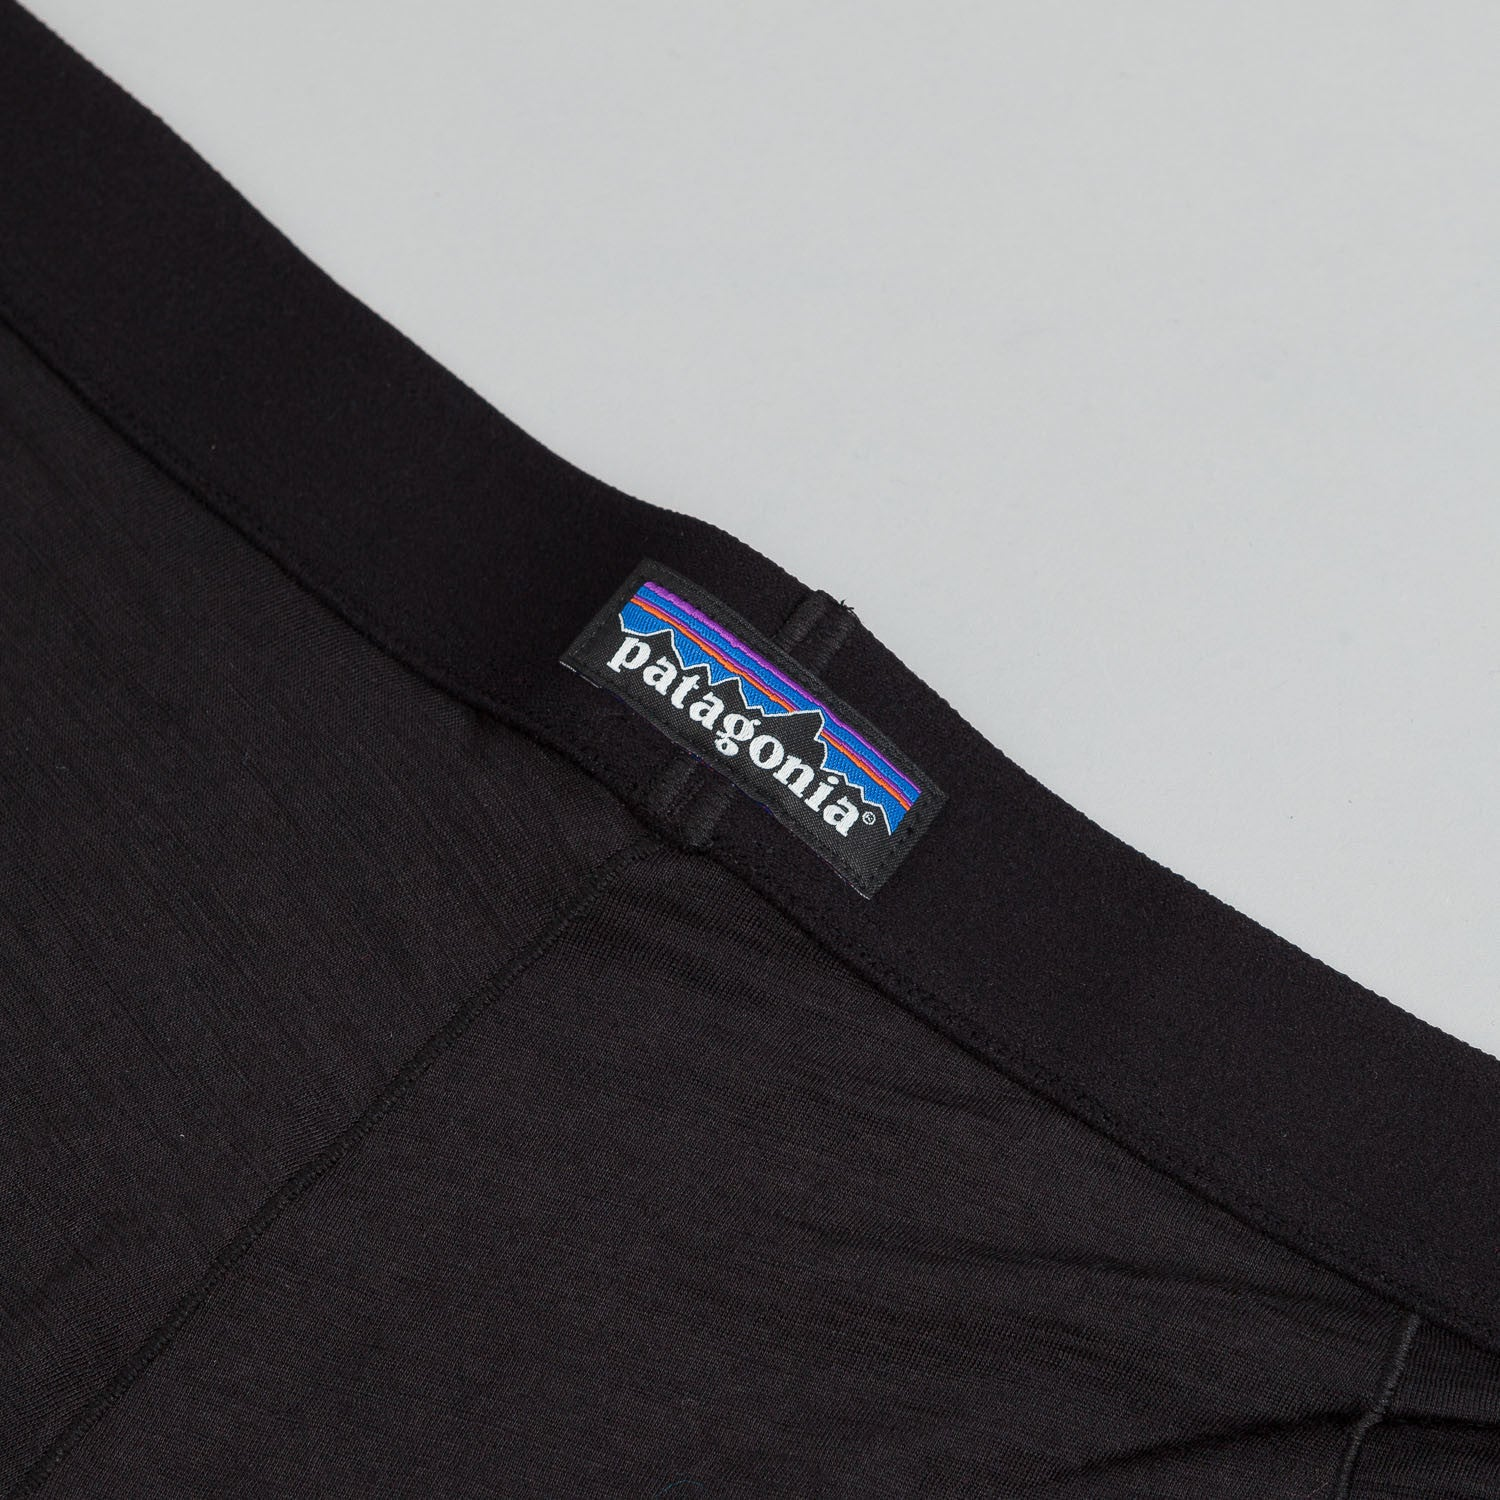 Patagonia Mens Merino Boxer Briefs - Black